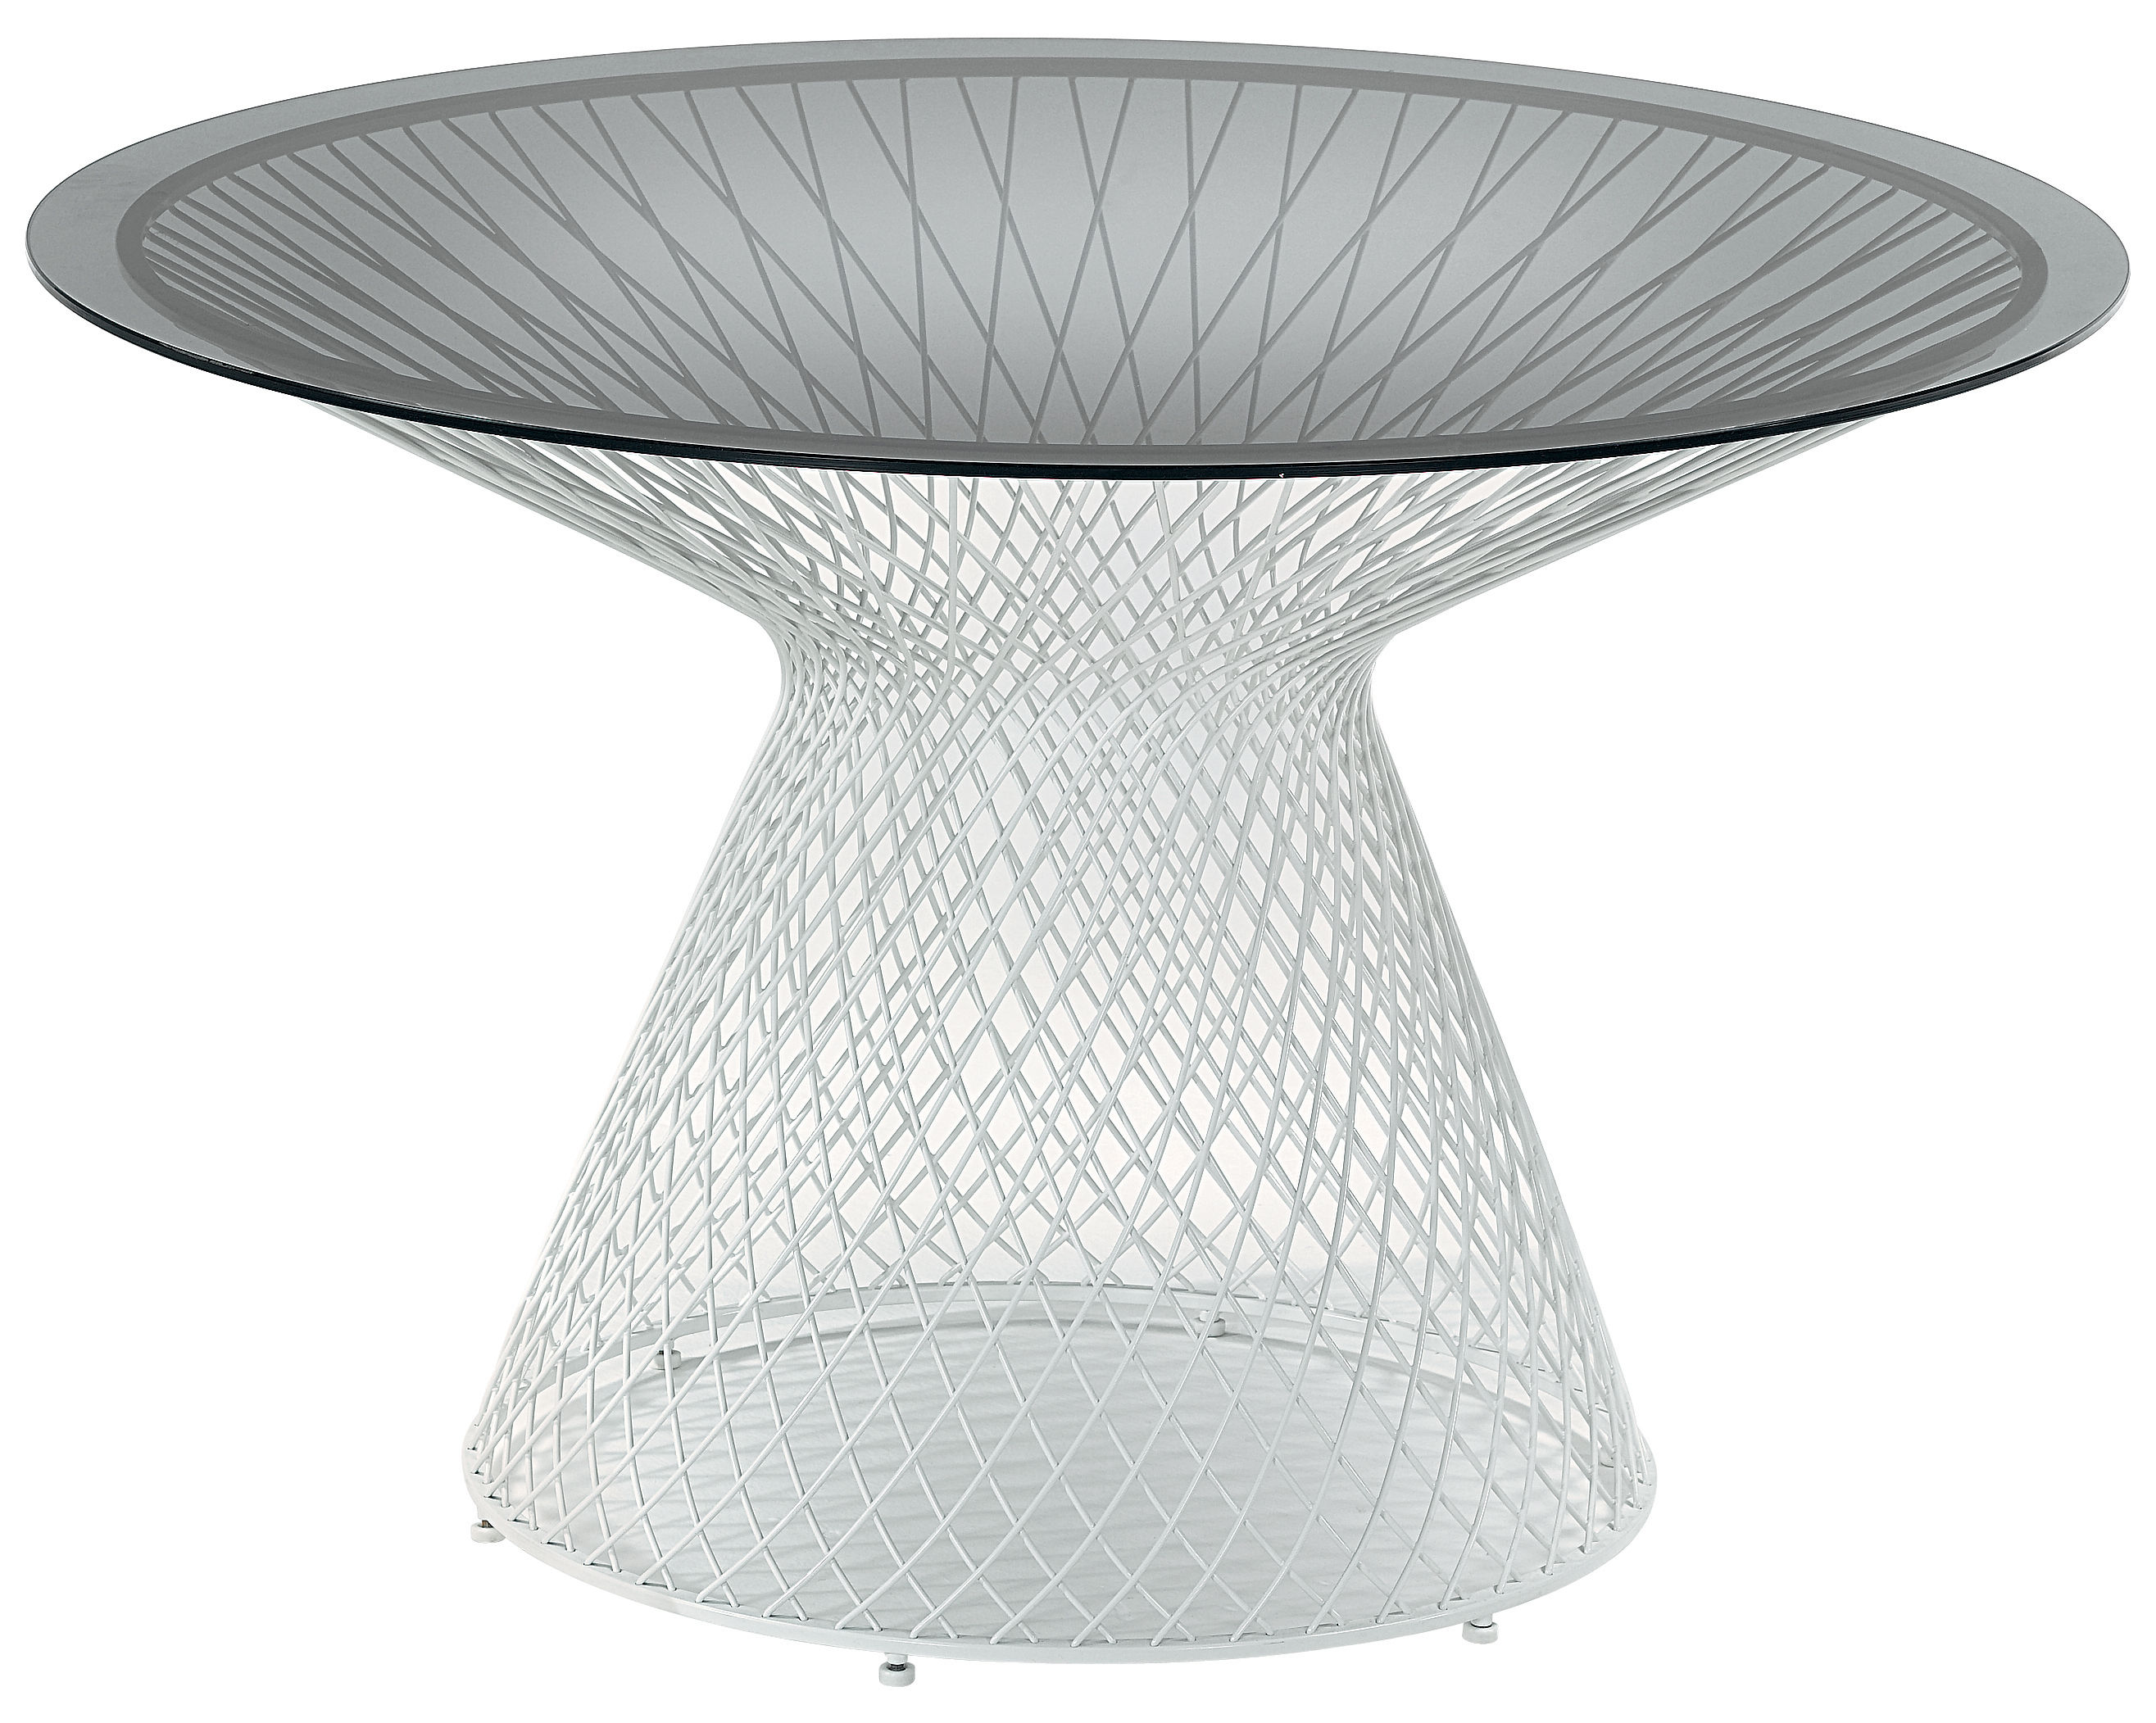 Outdoor - Garden Tables - Heaven Garden table - Ø 120 cm by Emu - Matt white - Glass, Steel